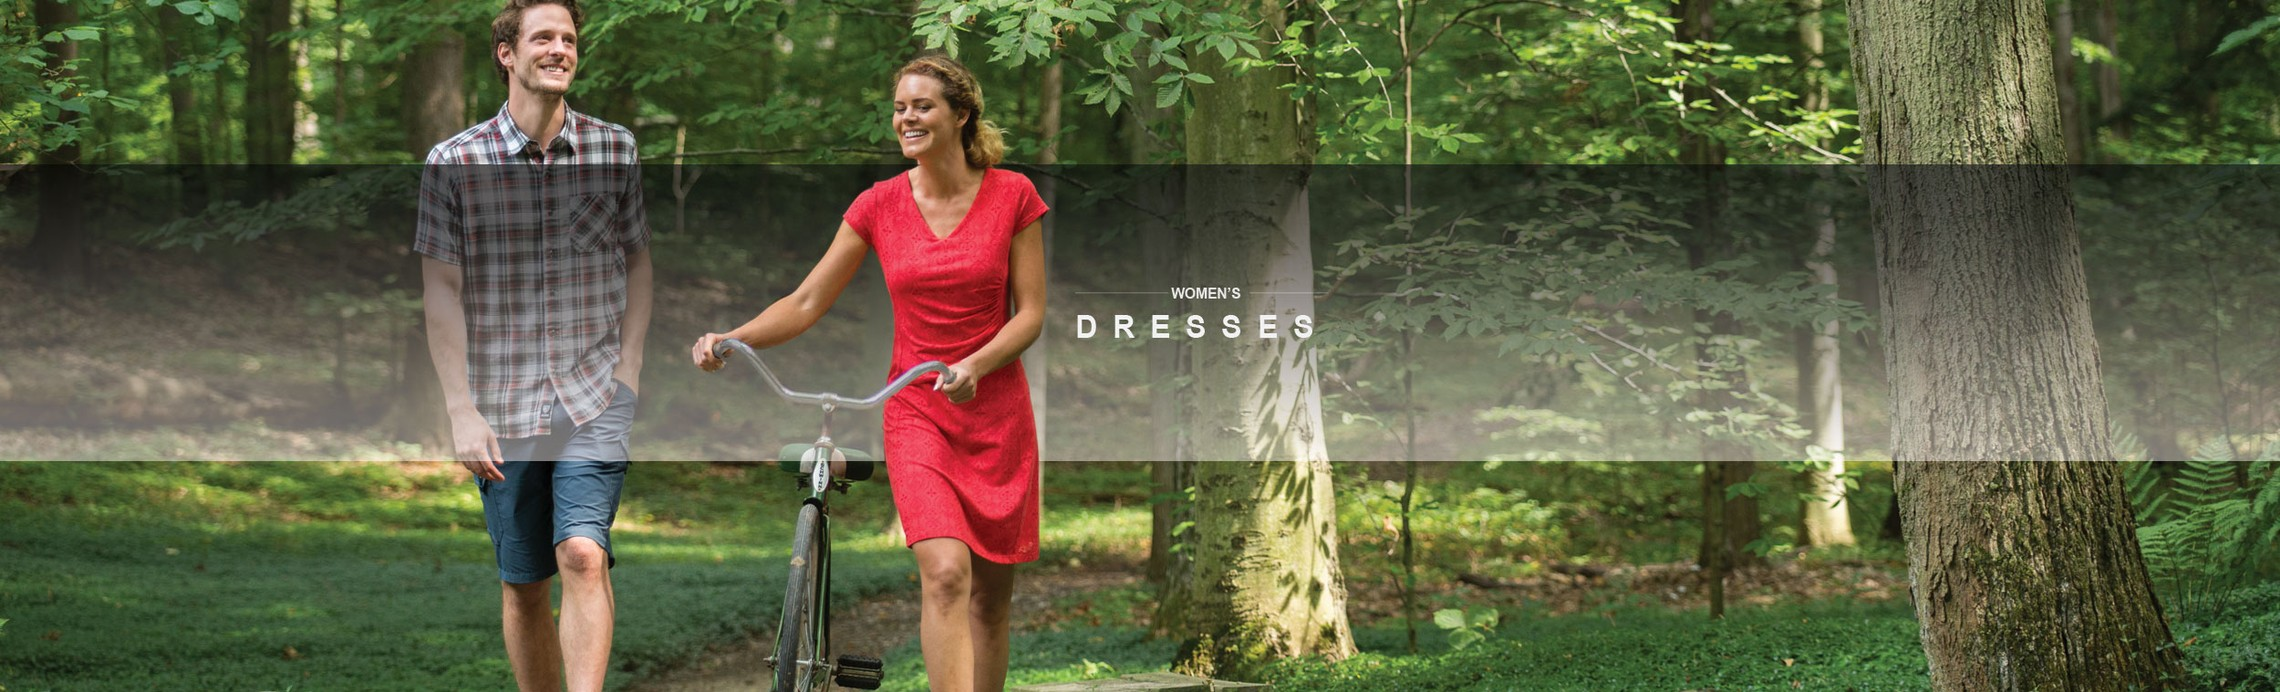 KÜHL Women's Dresses and Skirts / Casual Dresses